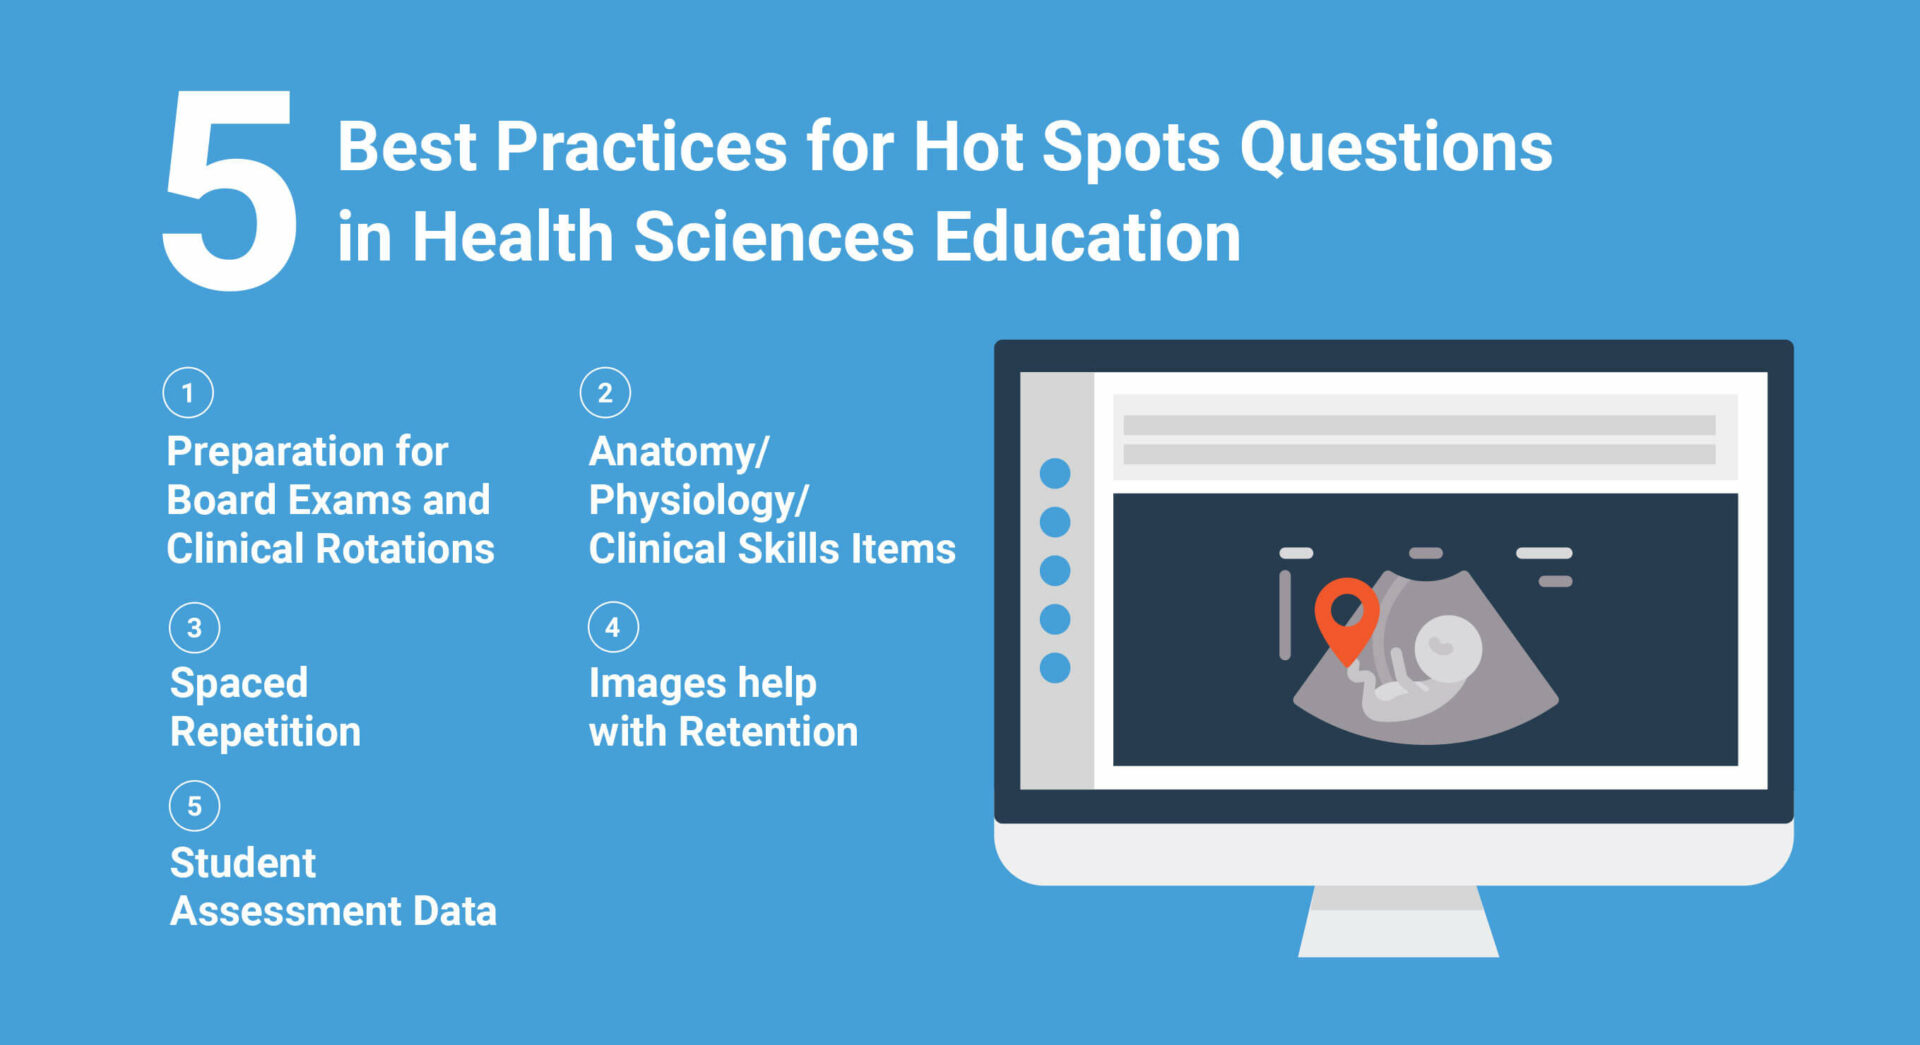 5 Best Practices for Hot Spots Questions in Health Sciences Education